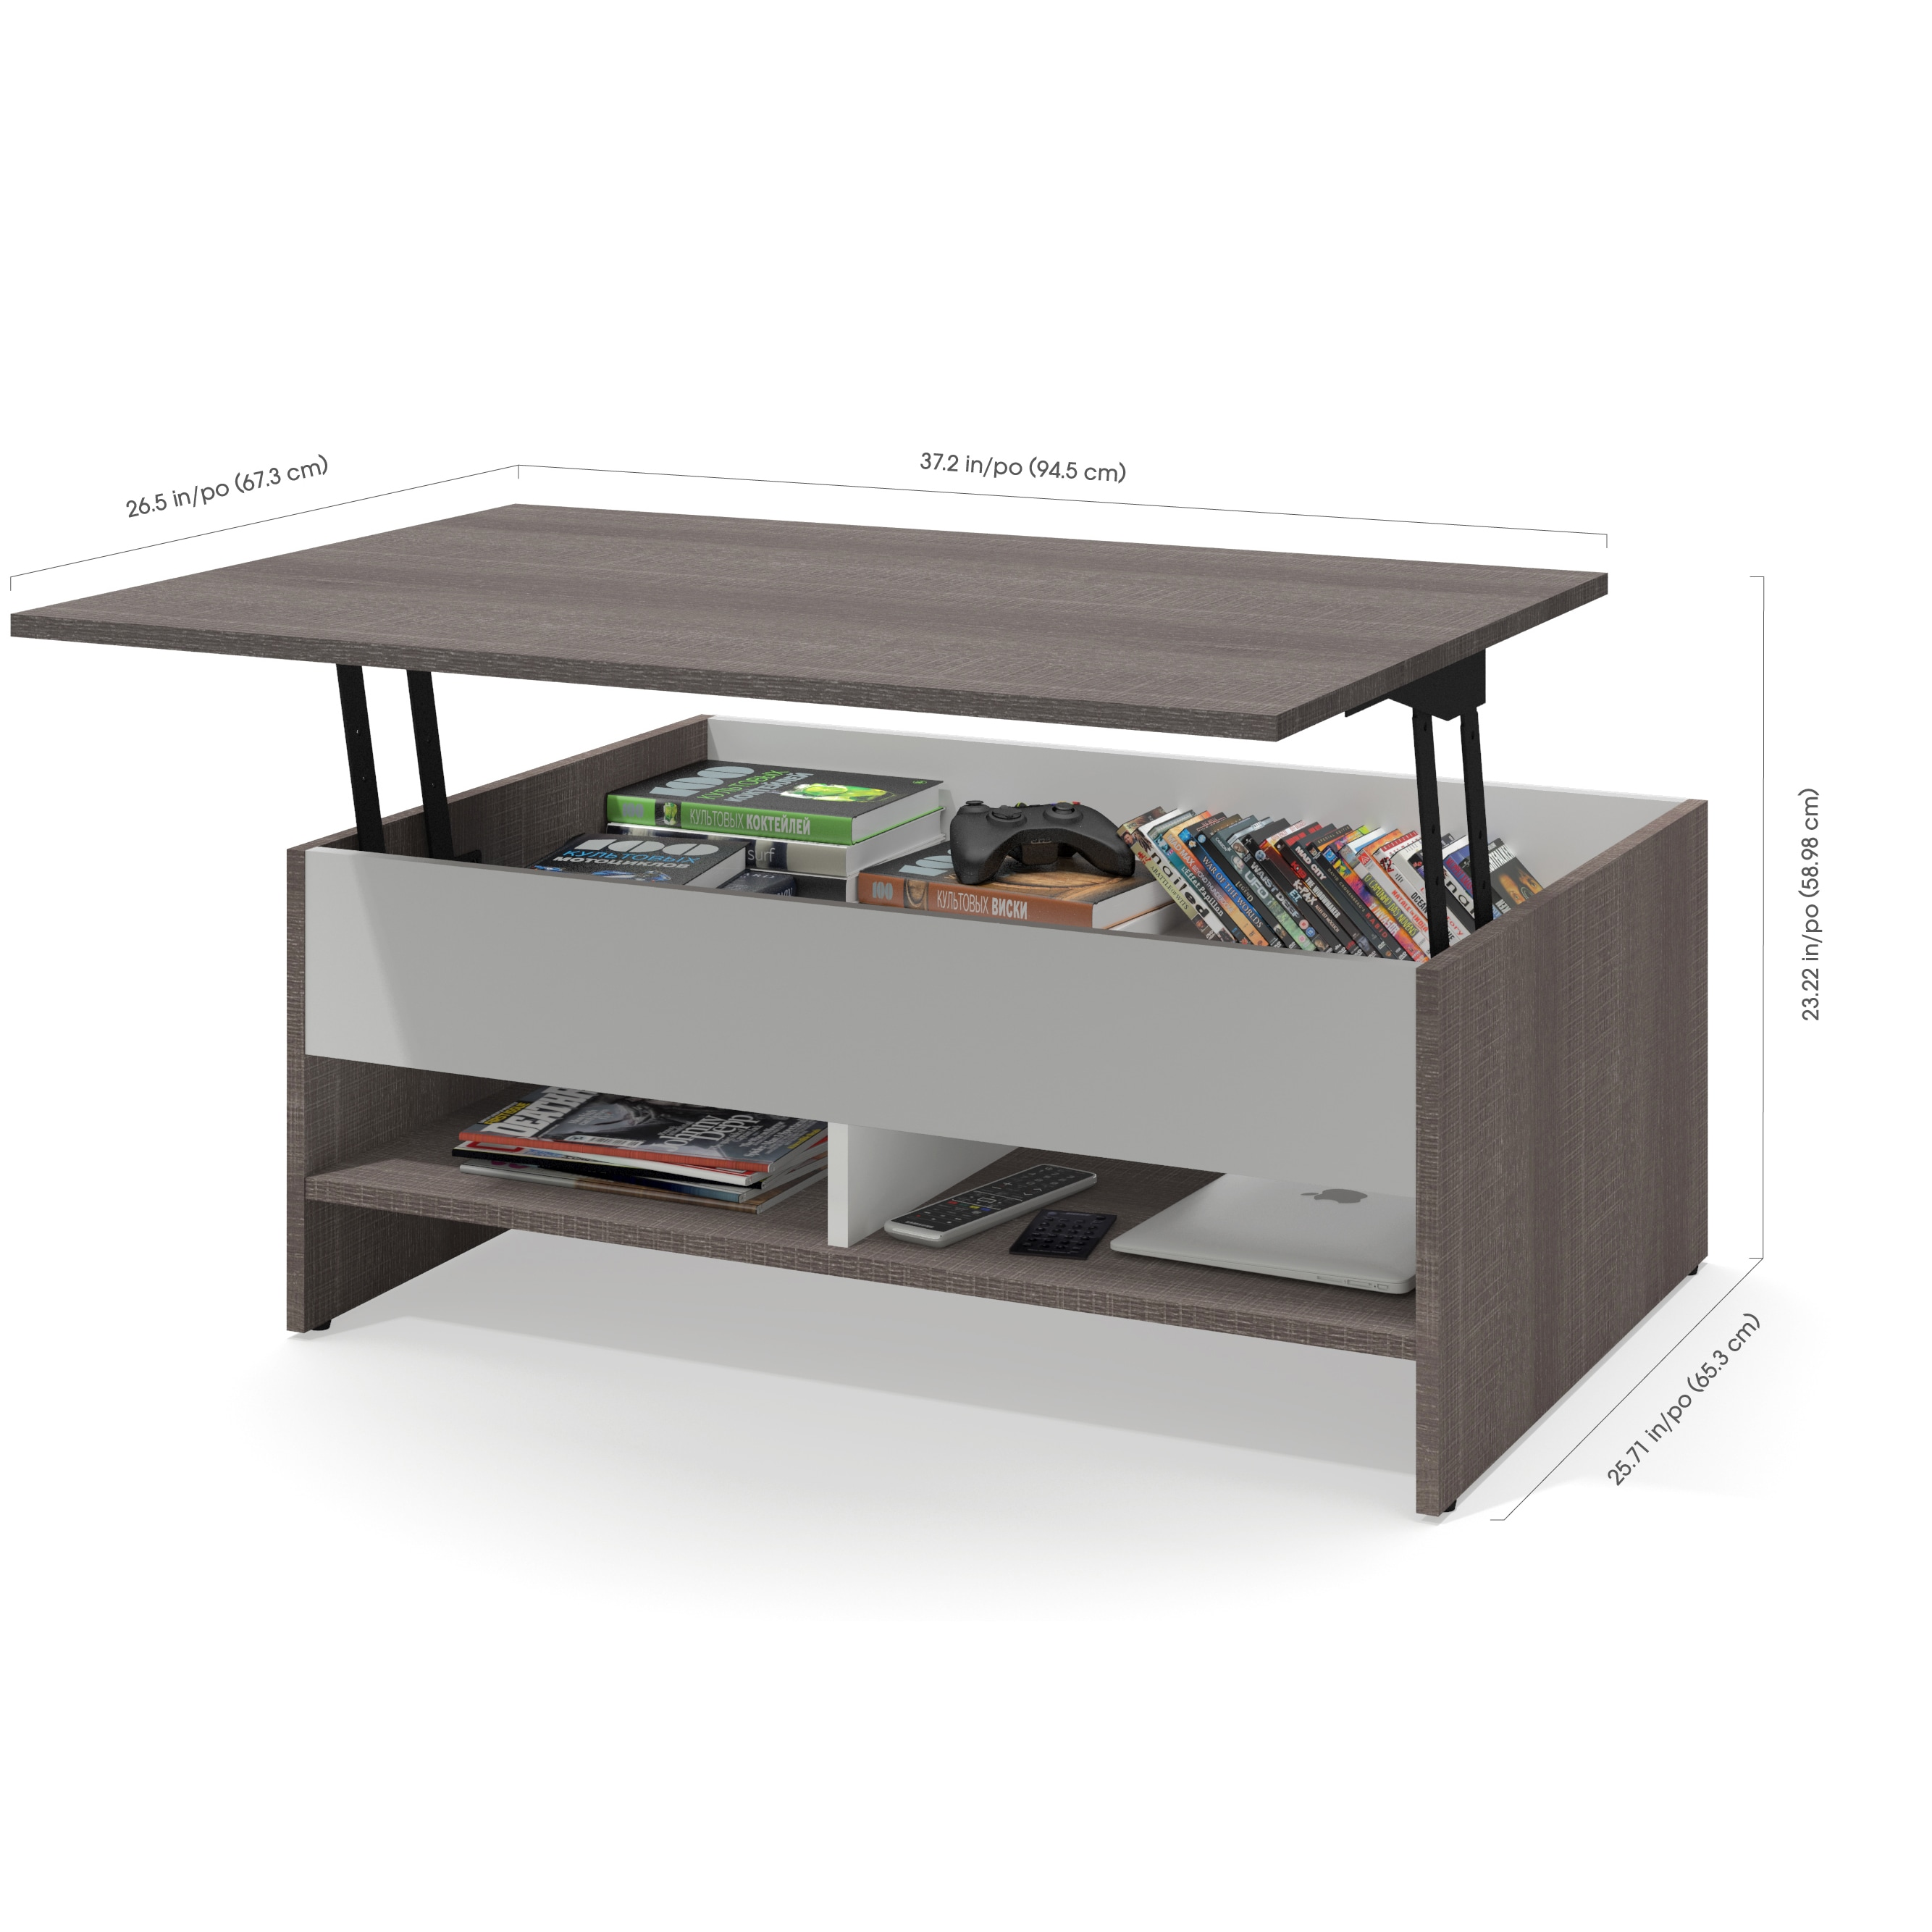 Shop Bestar Small Space 2 Piece Lift Top Storage Coffee Table and TV